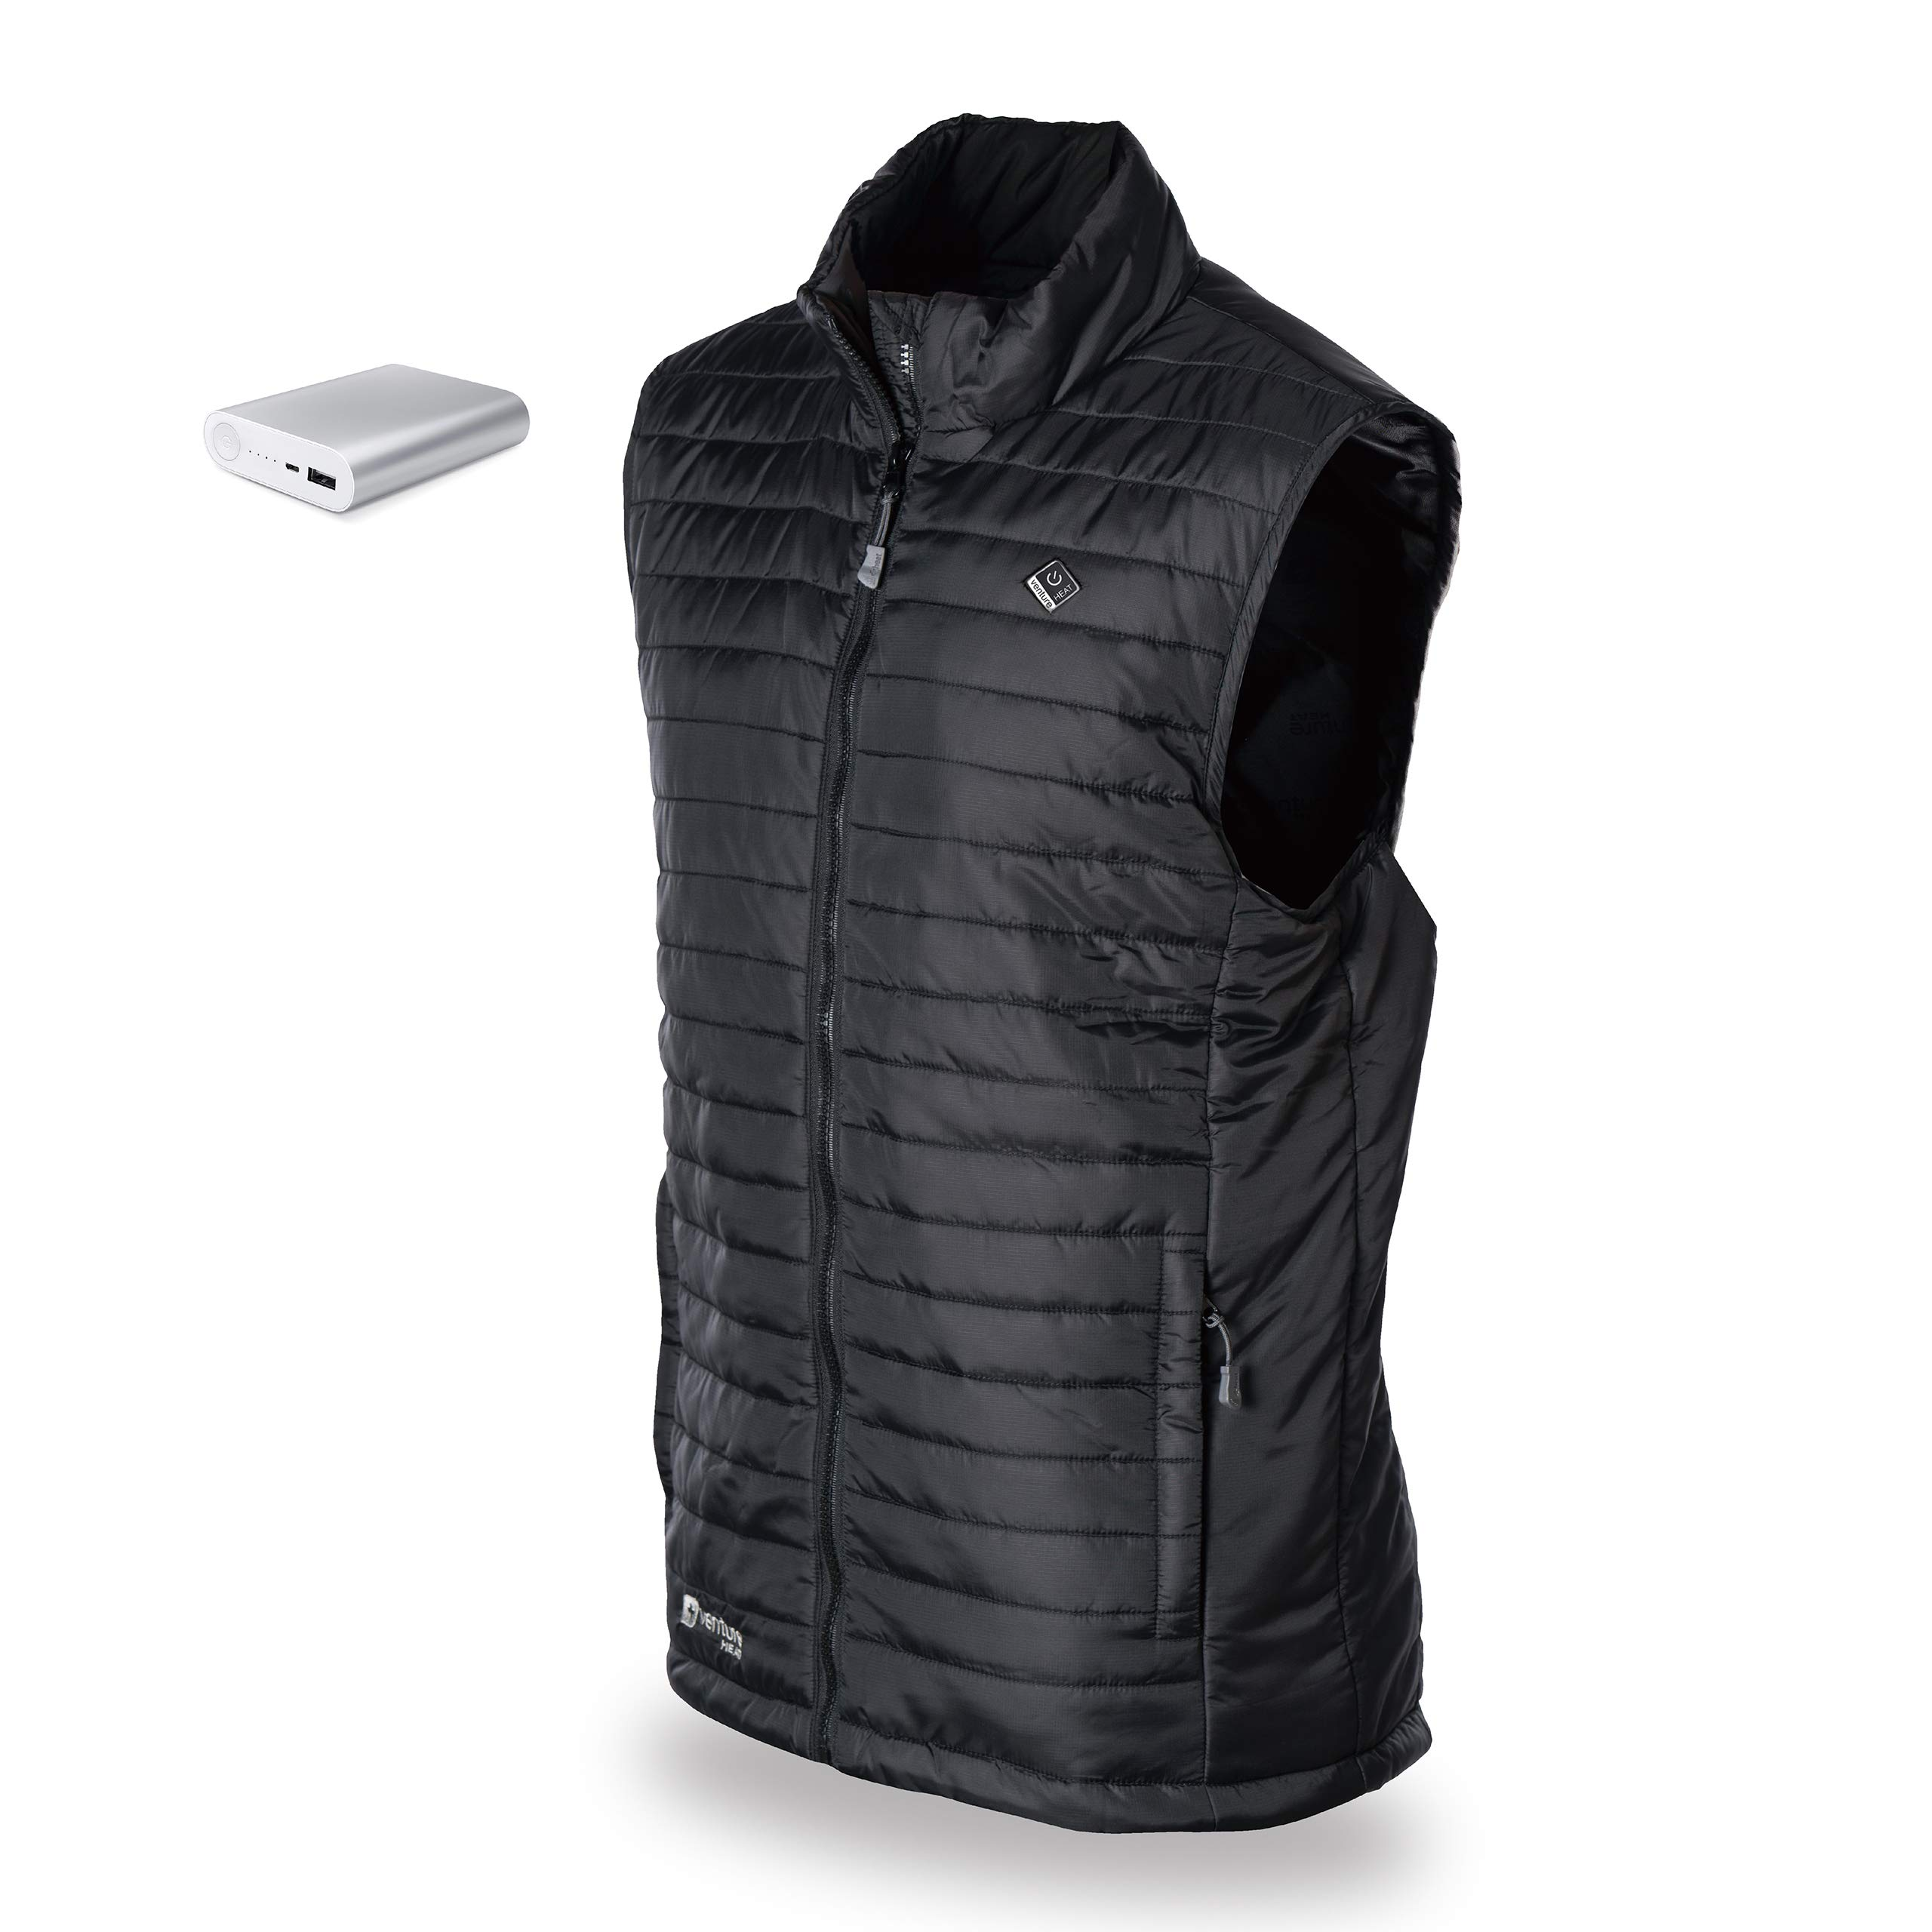 Venture Heat Men's Heated Vest with Battery 12 Hour - The Roam Puffer Heated Vest for Men Black